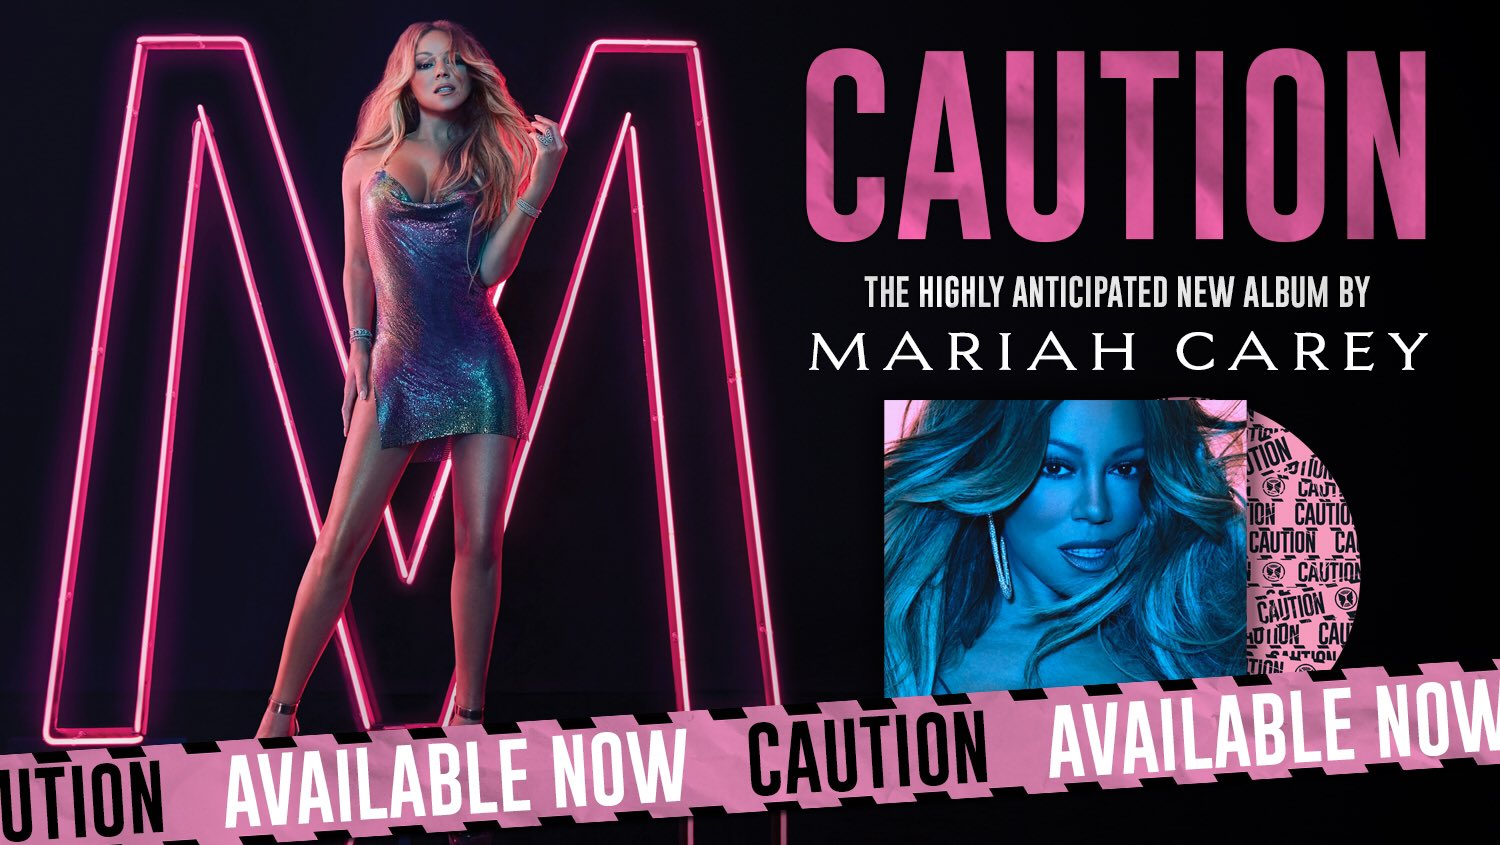 #CAUTION ������ OUT NOW!!! #MariahCaution https://t.co/noxGeYiwck https://t.co/ExSZTaT4K4